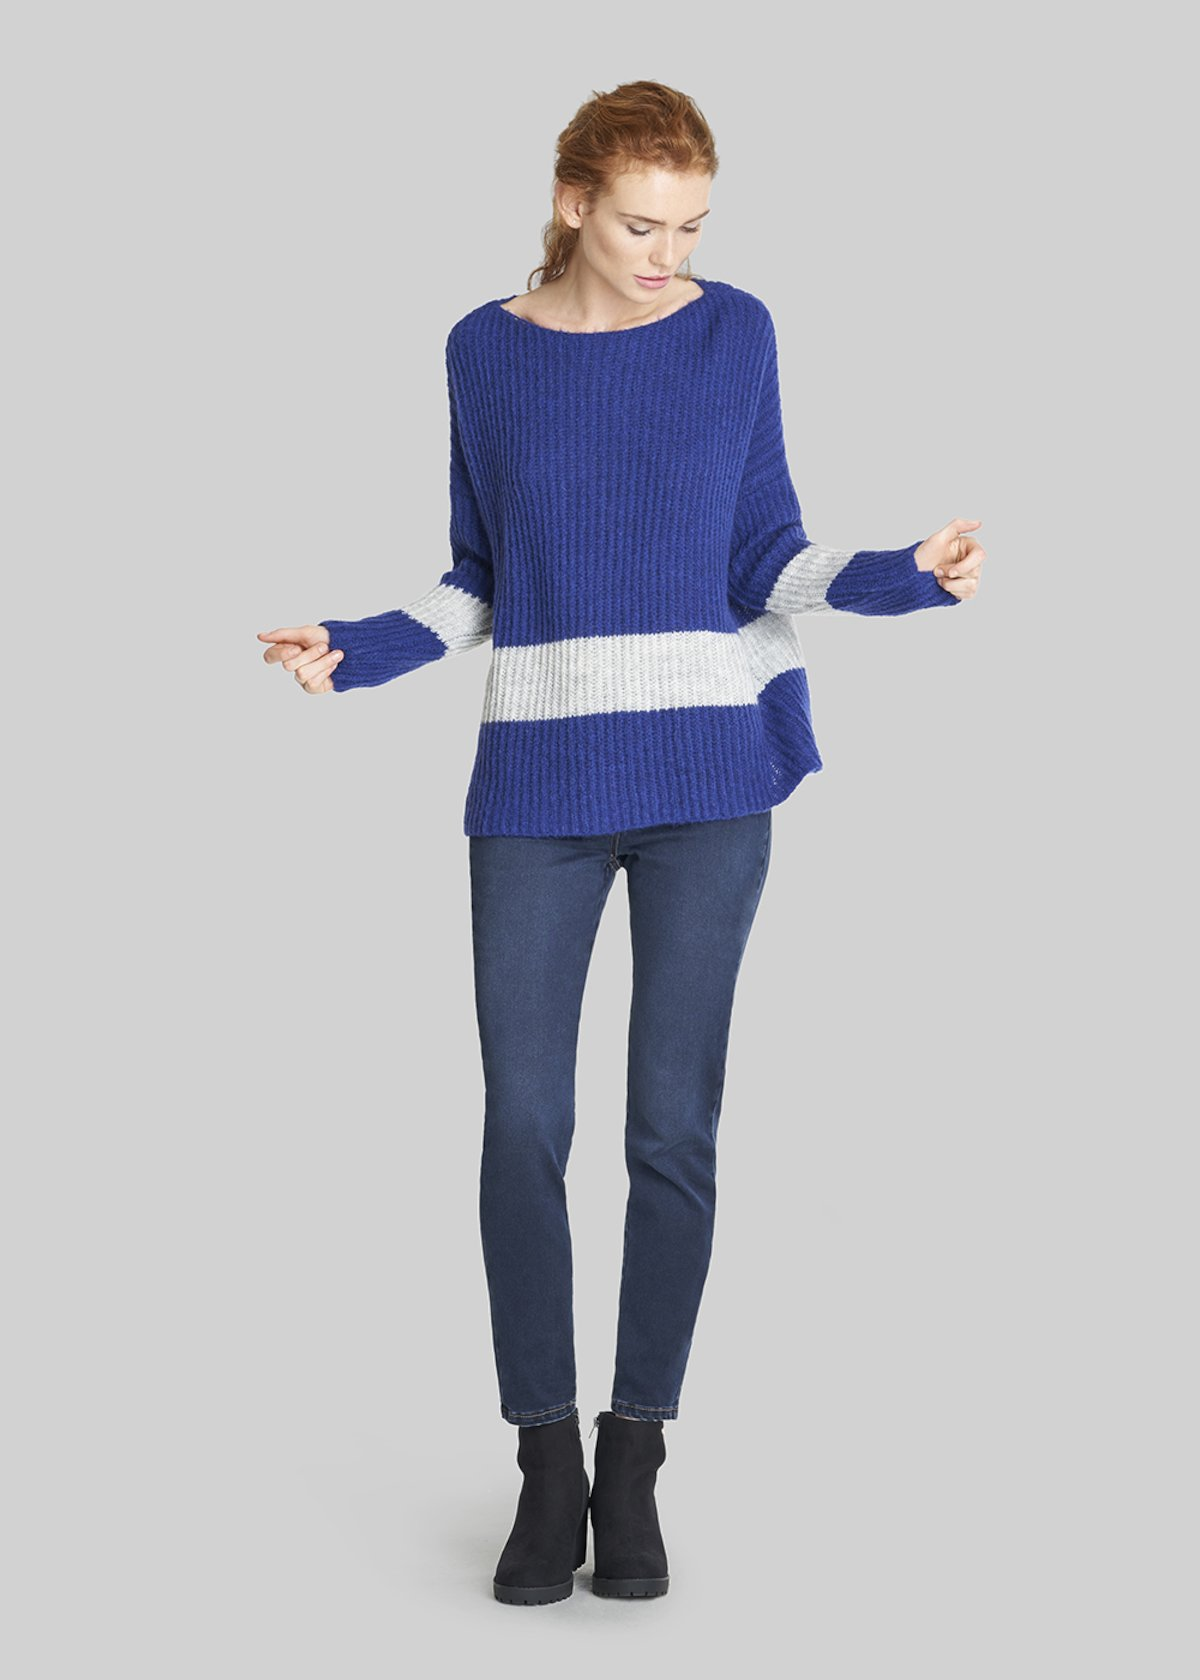 Mattias sweater over fit - Lapis / Light Grey Melange